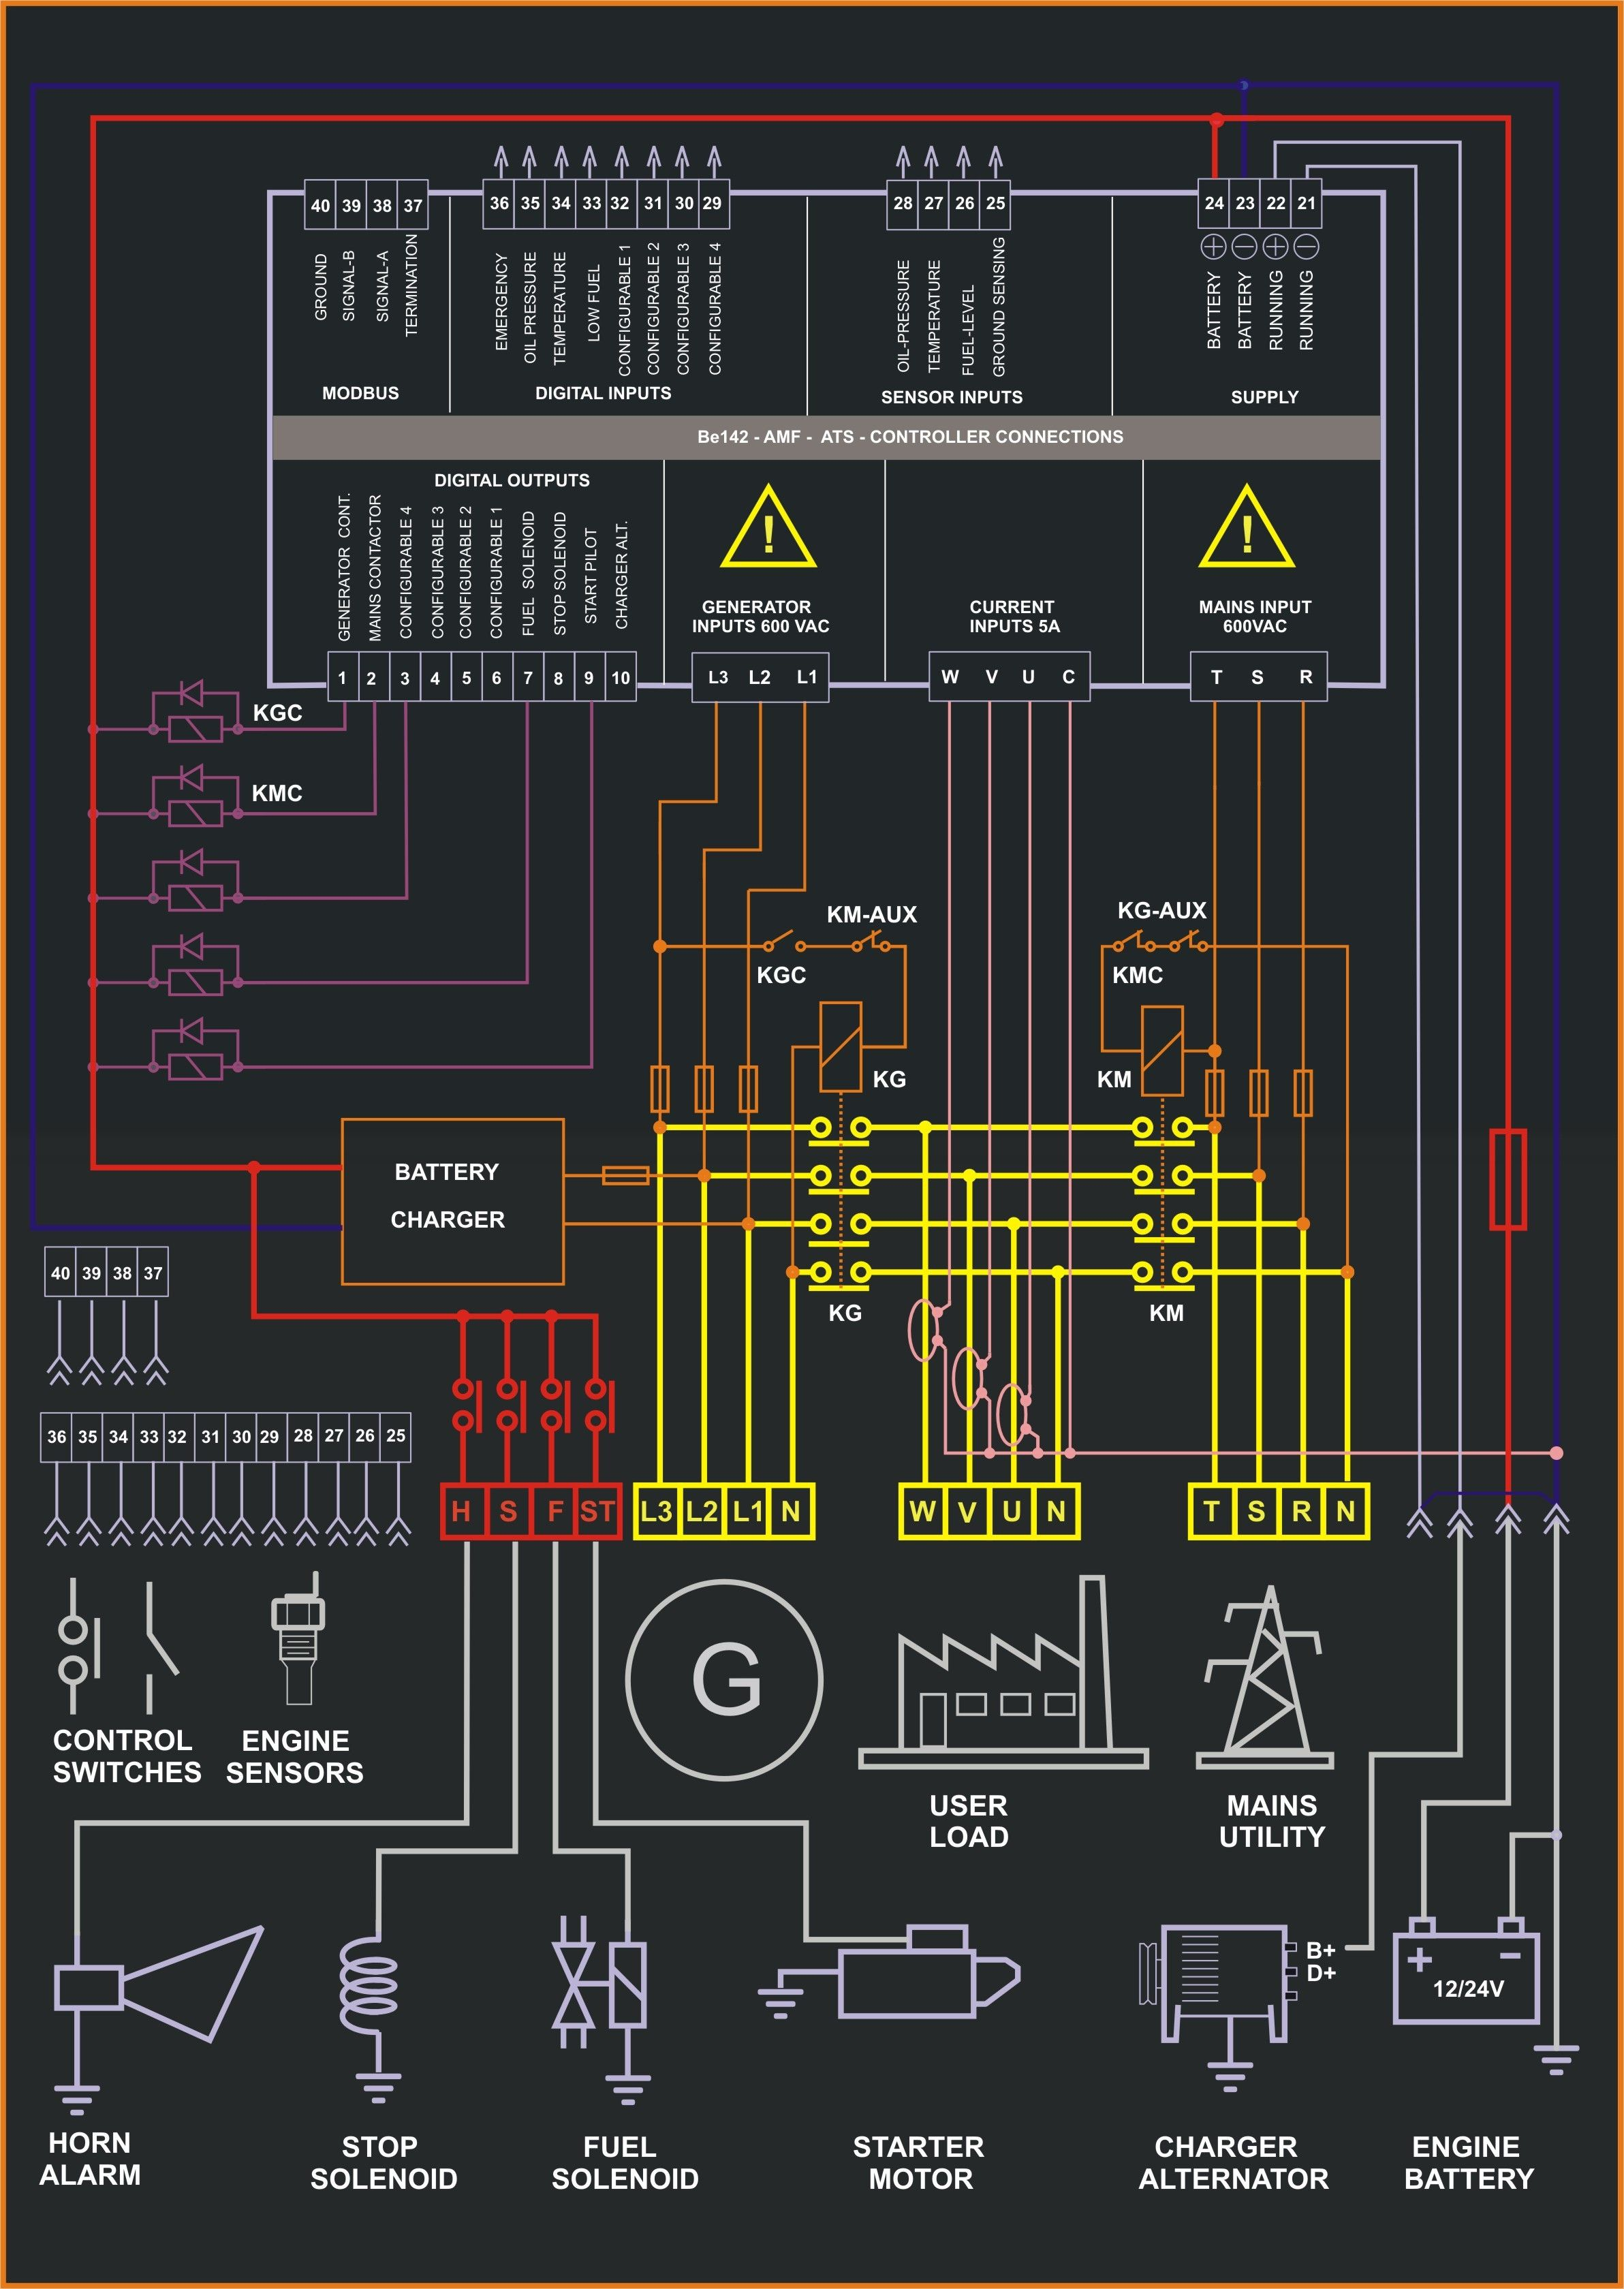 wiring diagrams pdf wiring diagram schematicpdf electrical wiring diagrams wiring diagram name free car wiring diagrams [ 2384 x 3360 Pixel ]